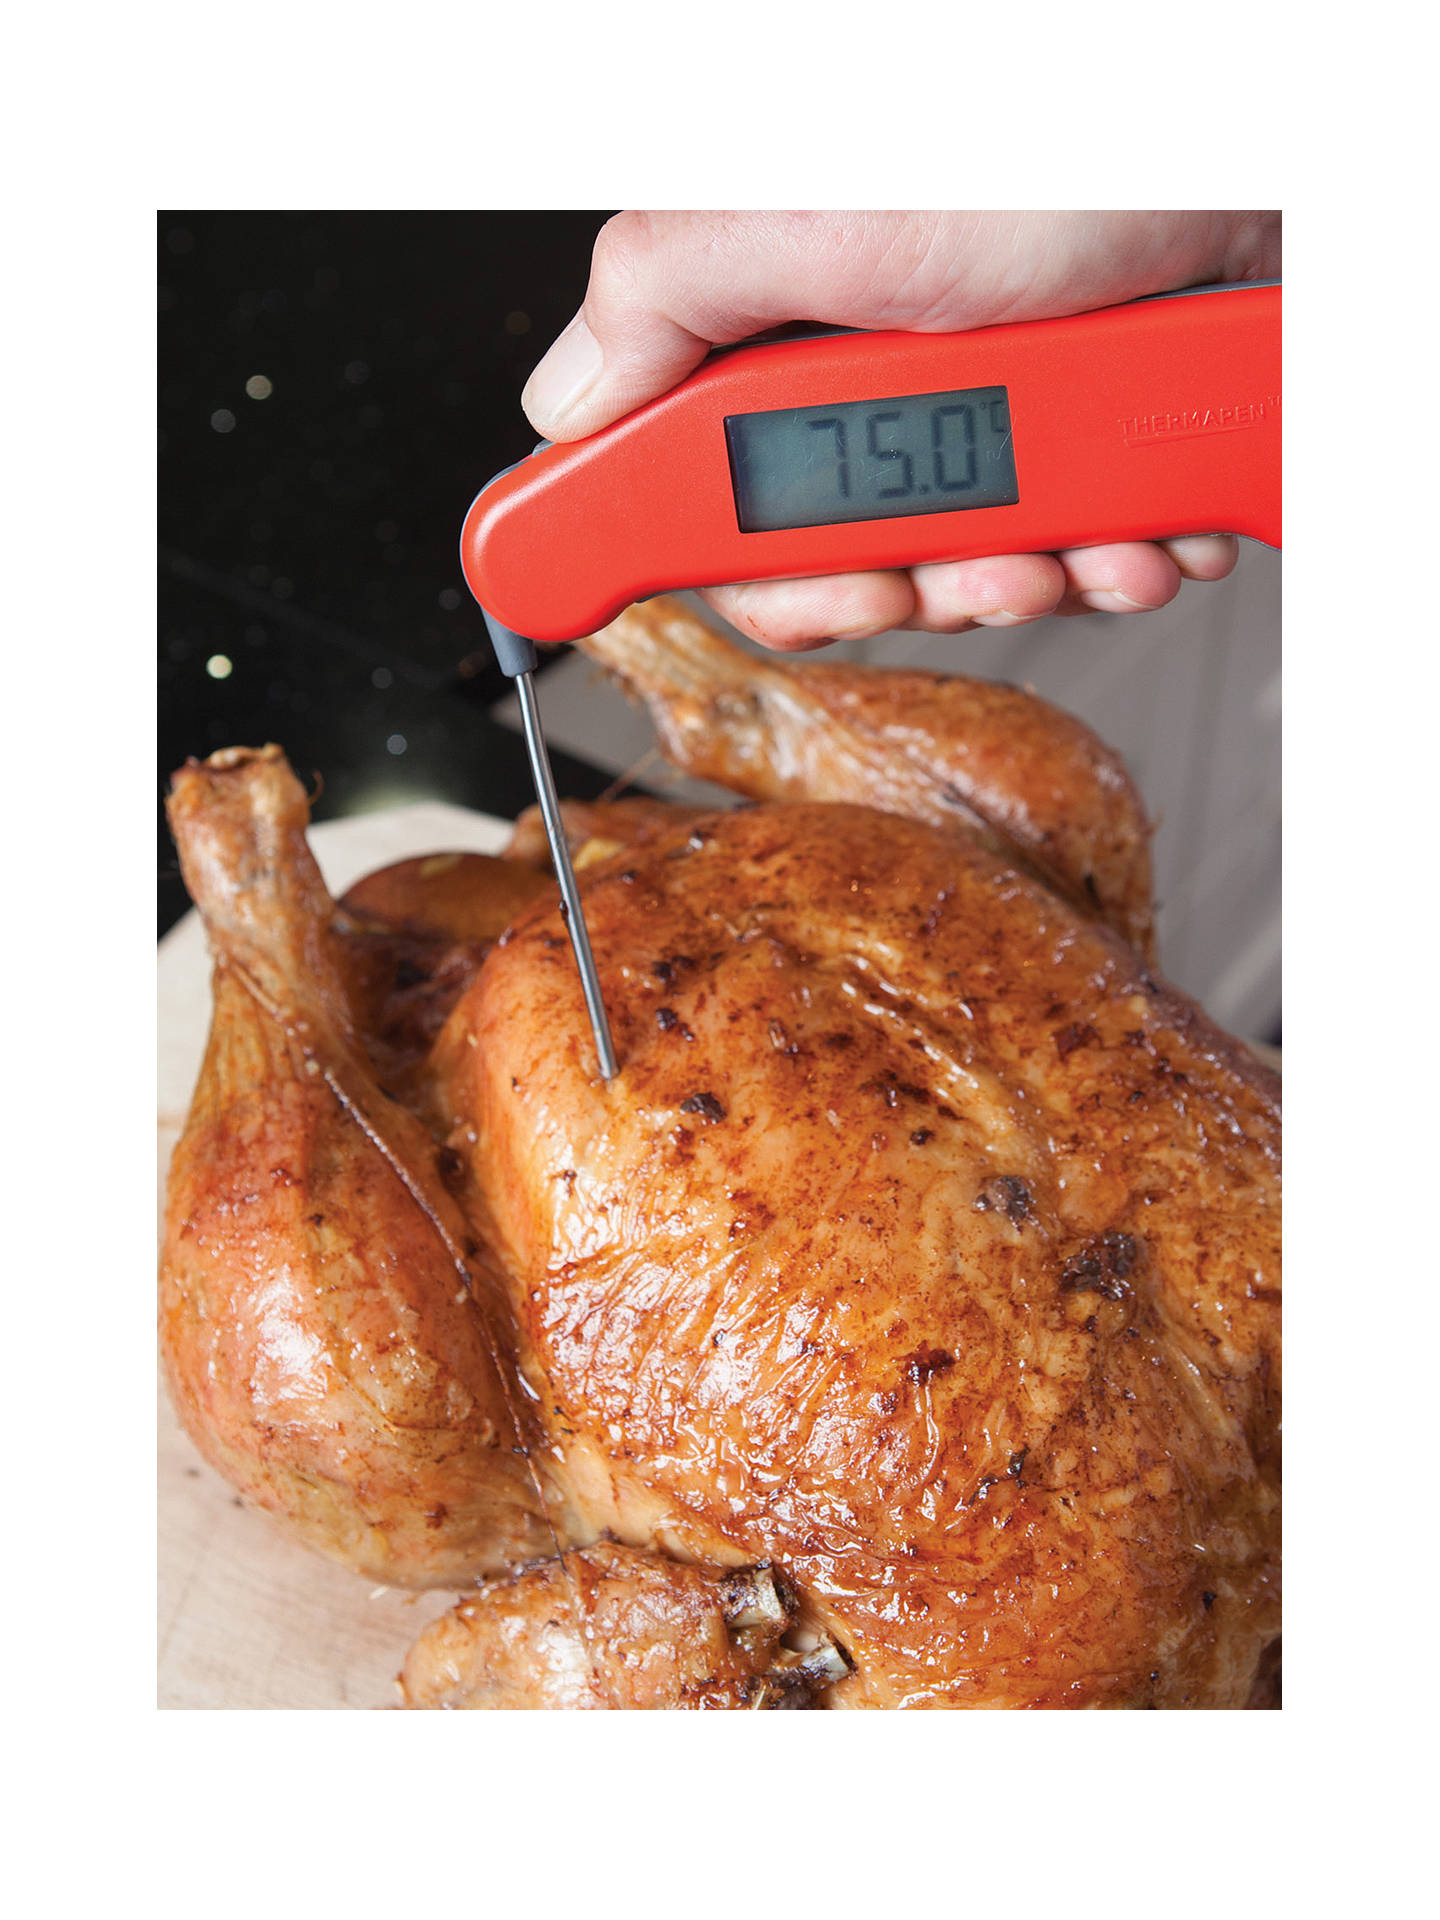 BuyThermapen 3 Classic SuperFast Food Thermometer, Red Online at johnlewis.com